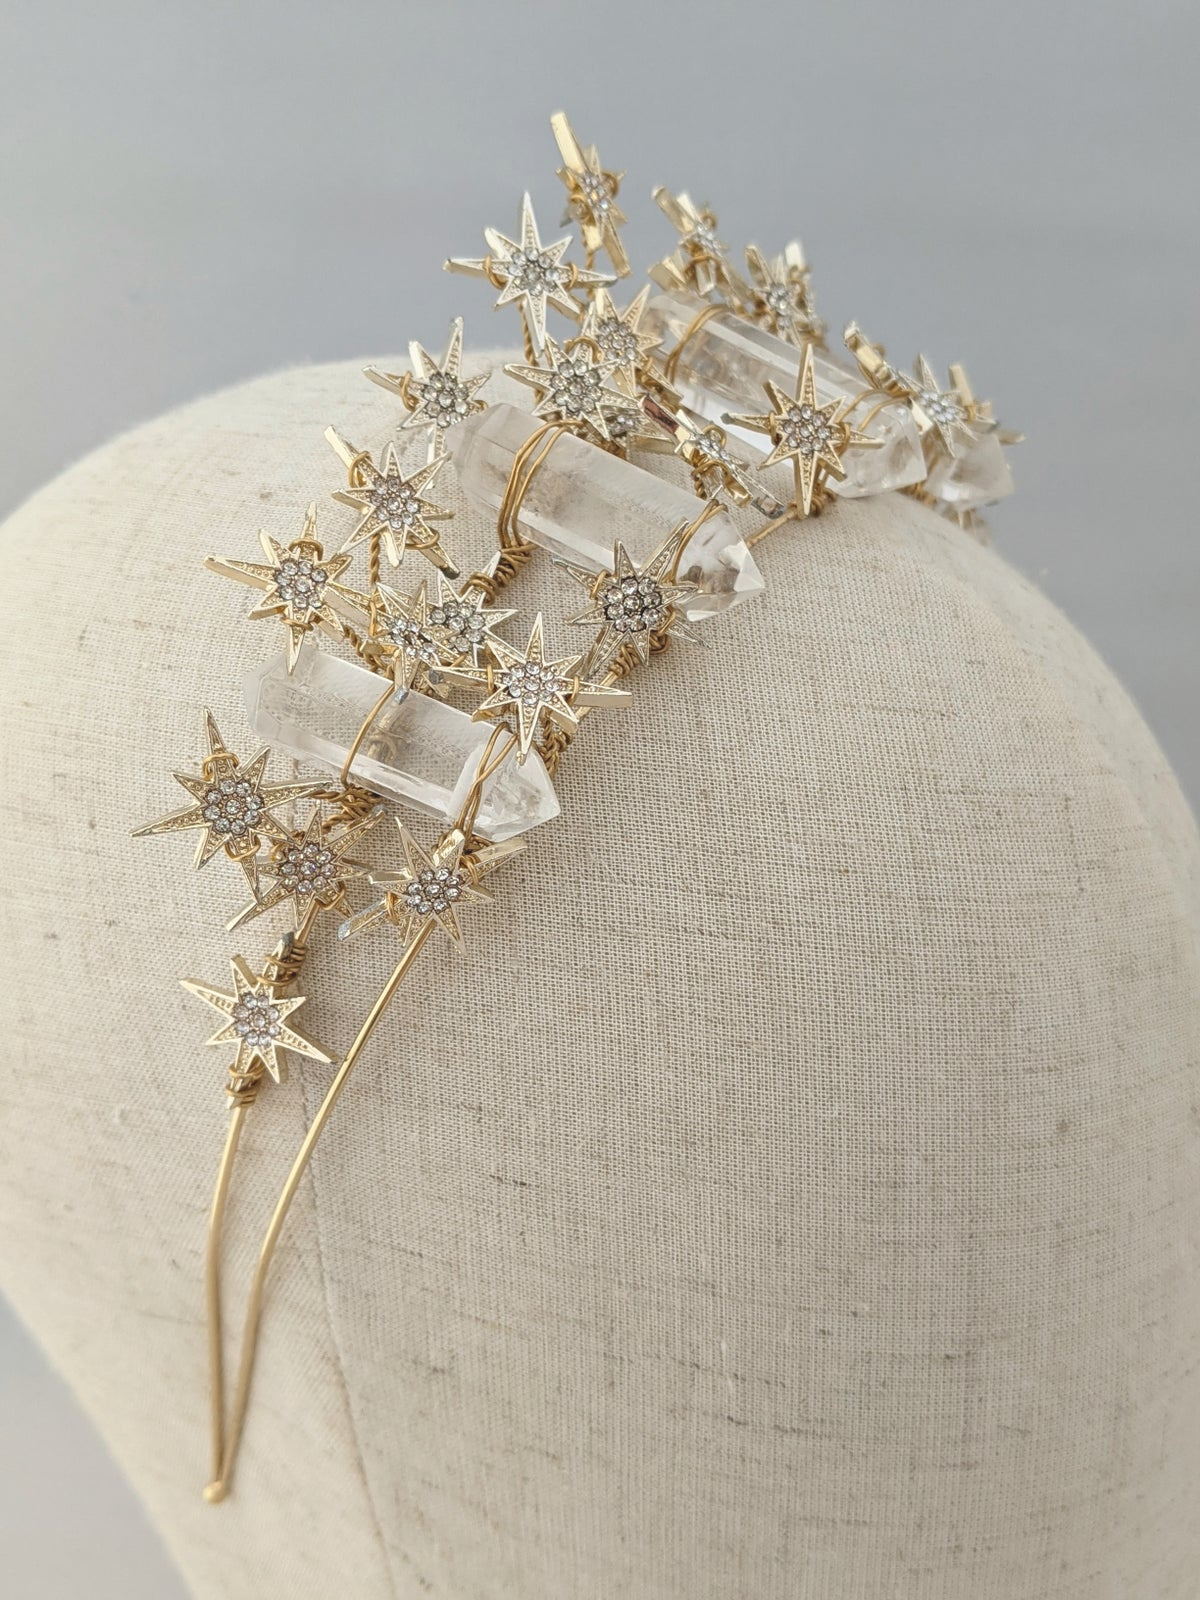 Starry night crystal crown